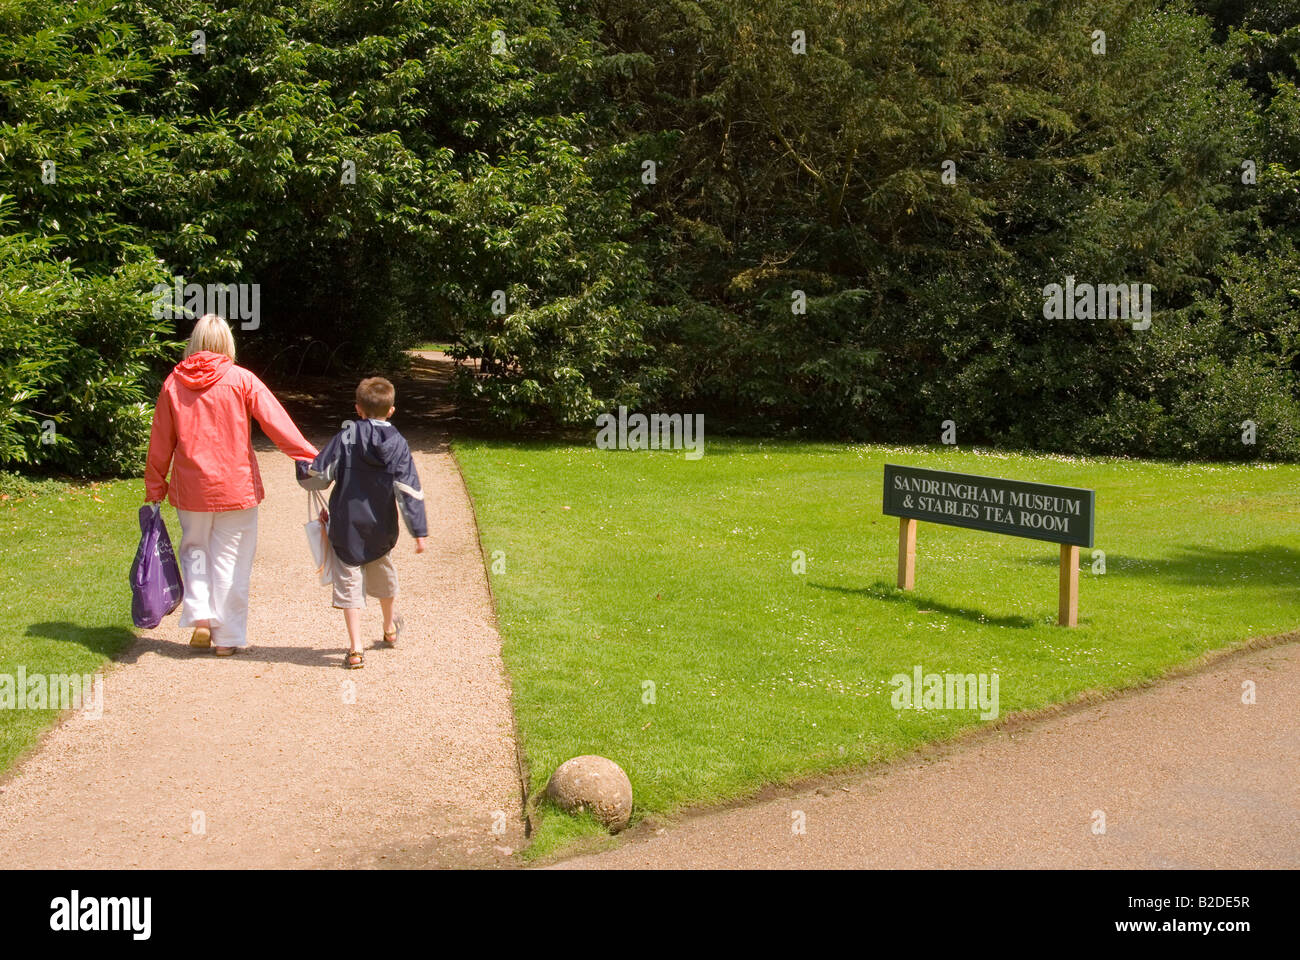 Mother And Son On Path Leading To Sandringham Museum And Stables Tea Room - Stock Image